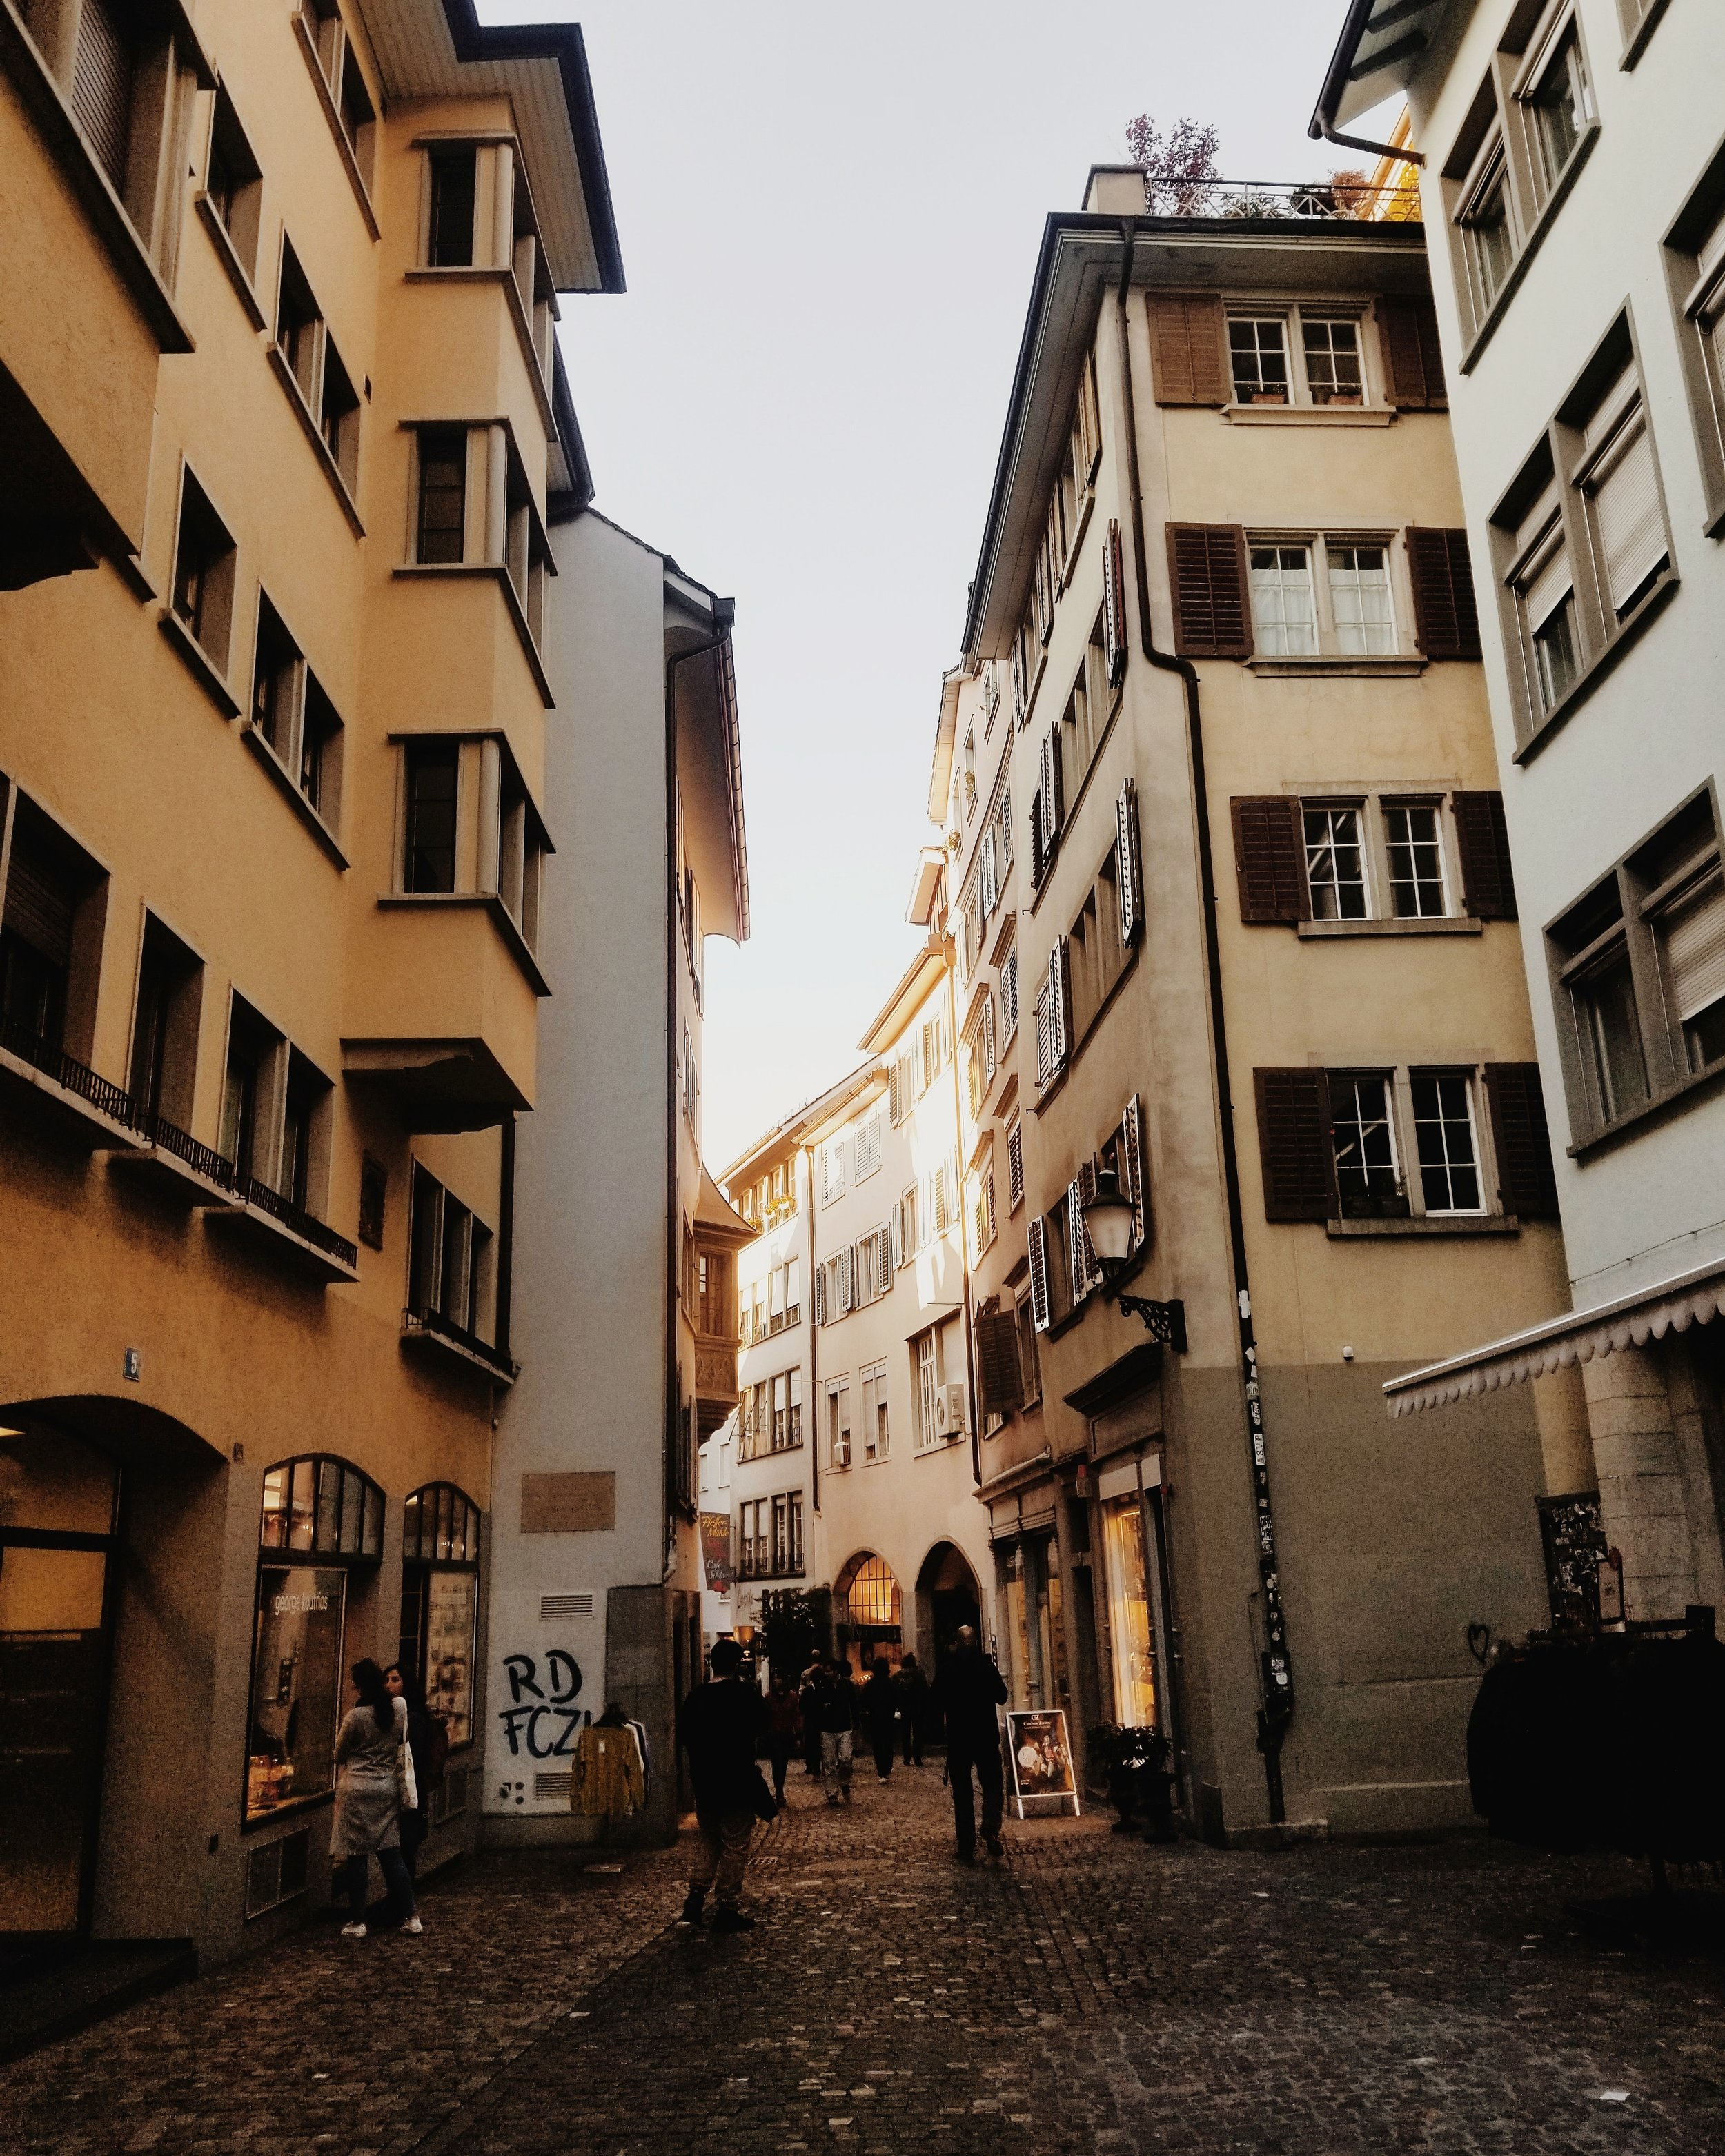 HIstoric district of zurich - Lots of little shops and restaurants!